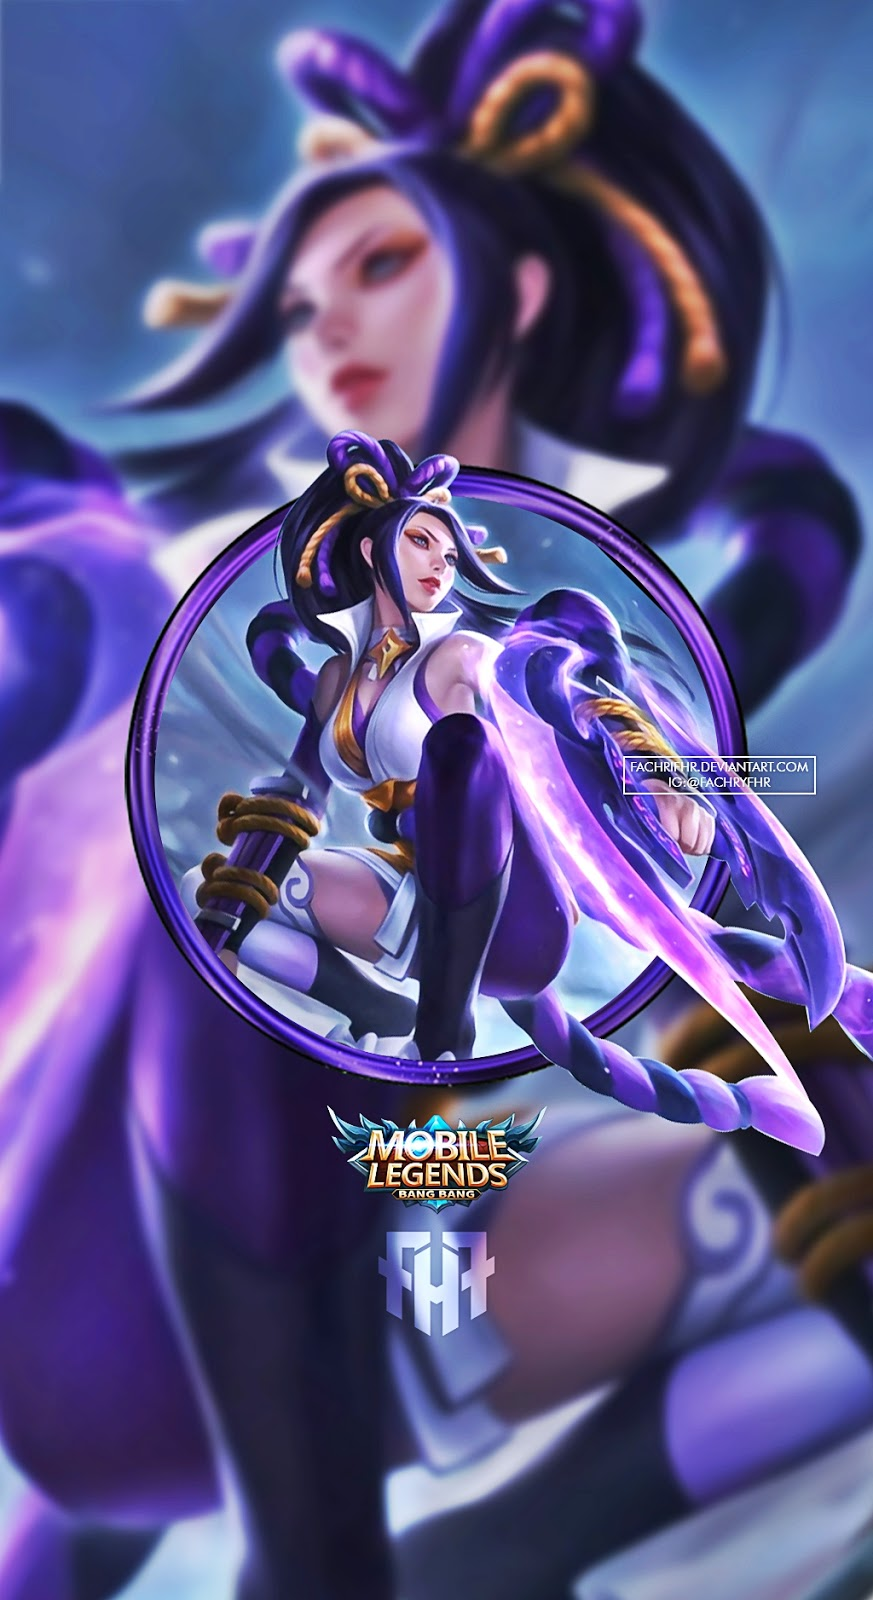 900 Gambar Selena Mobile Legends Hd HD